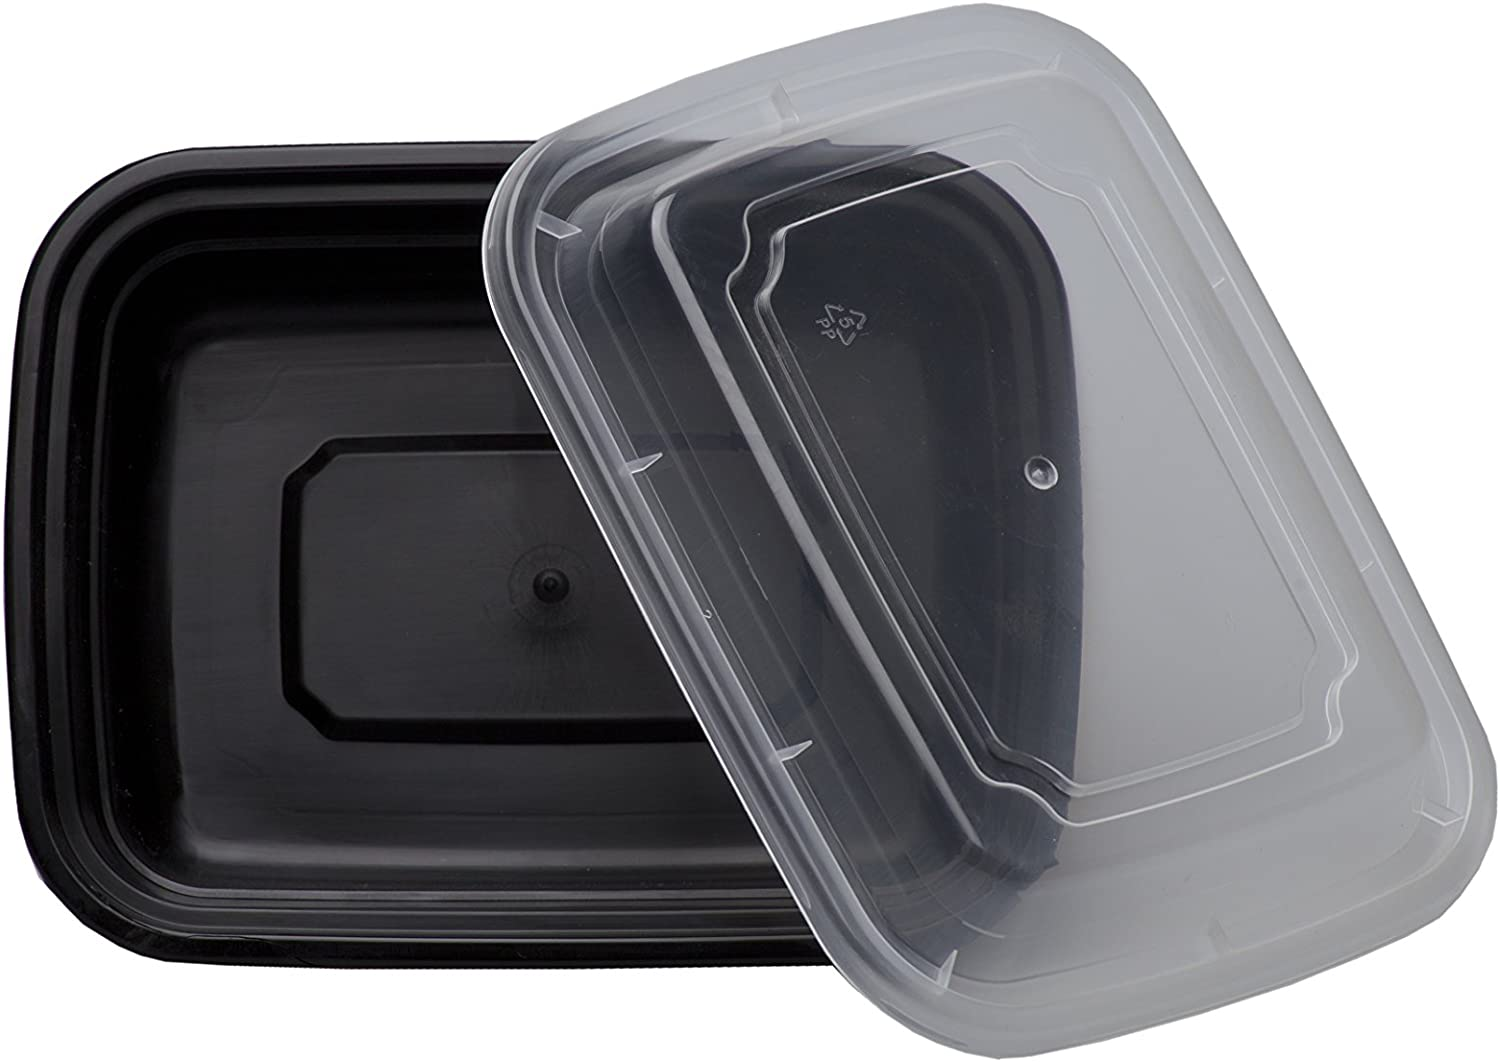 SAFEPRO 12 oz. Black Rectangular Microwavable Container with Clear Lid, Bento Lunch Box, Plastic Take-Out Containers (Case of 100)